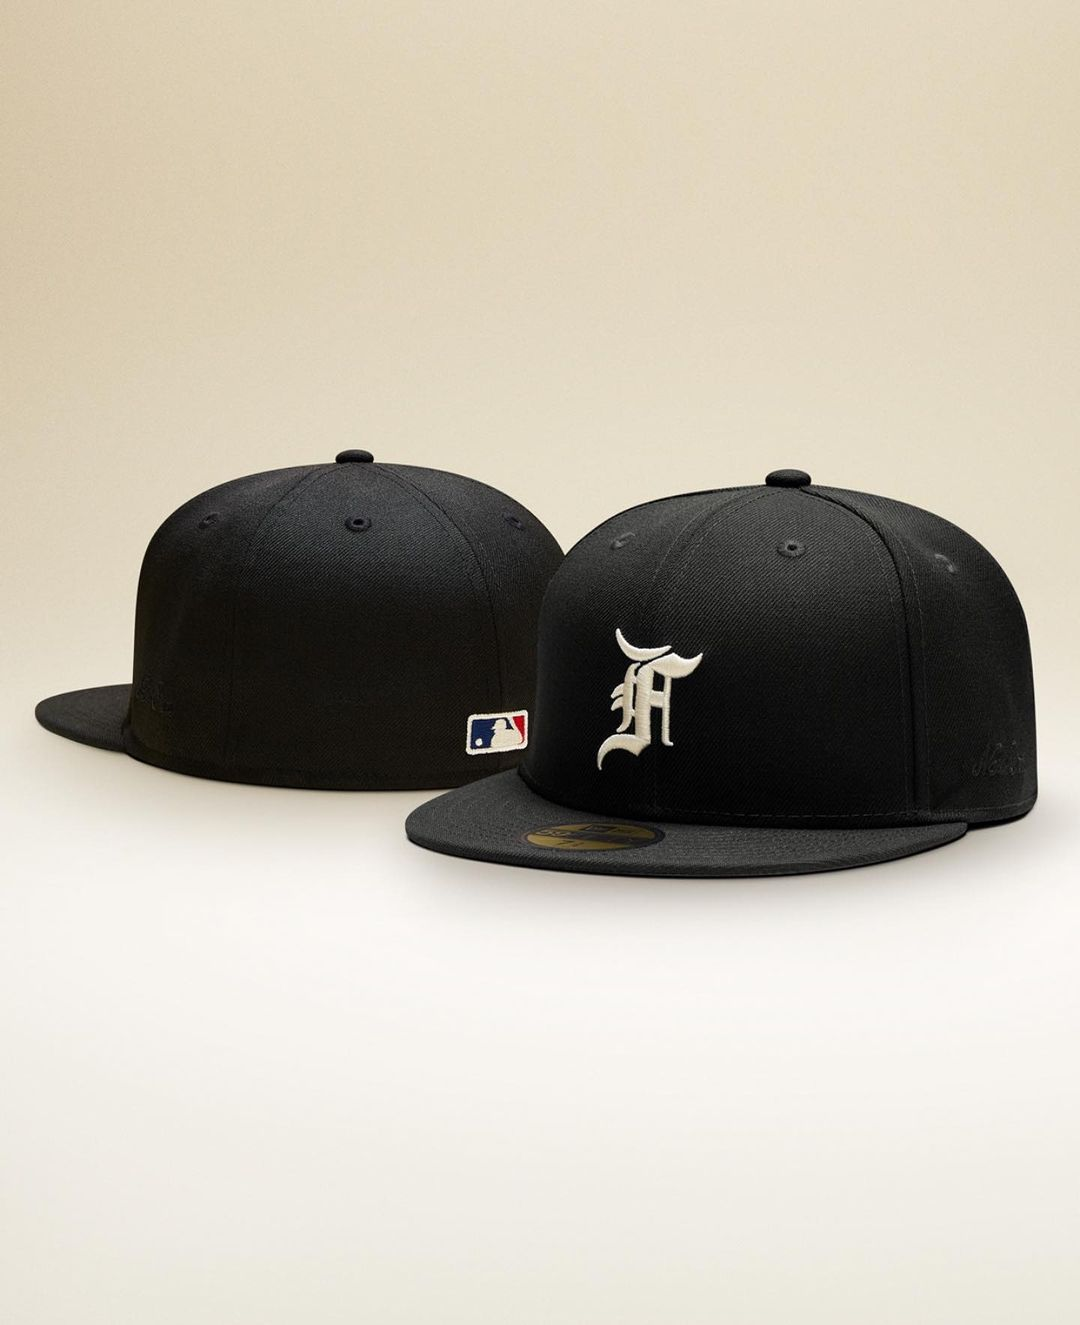 fear-of-god-essentials-new-era-mlb-fitted-caps-release-20201230